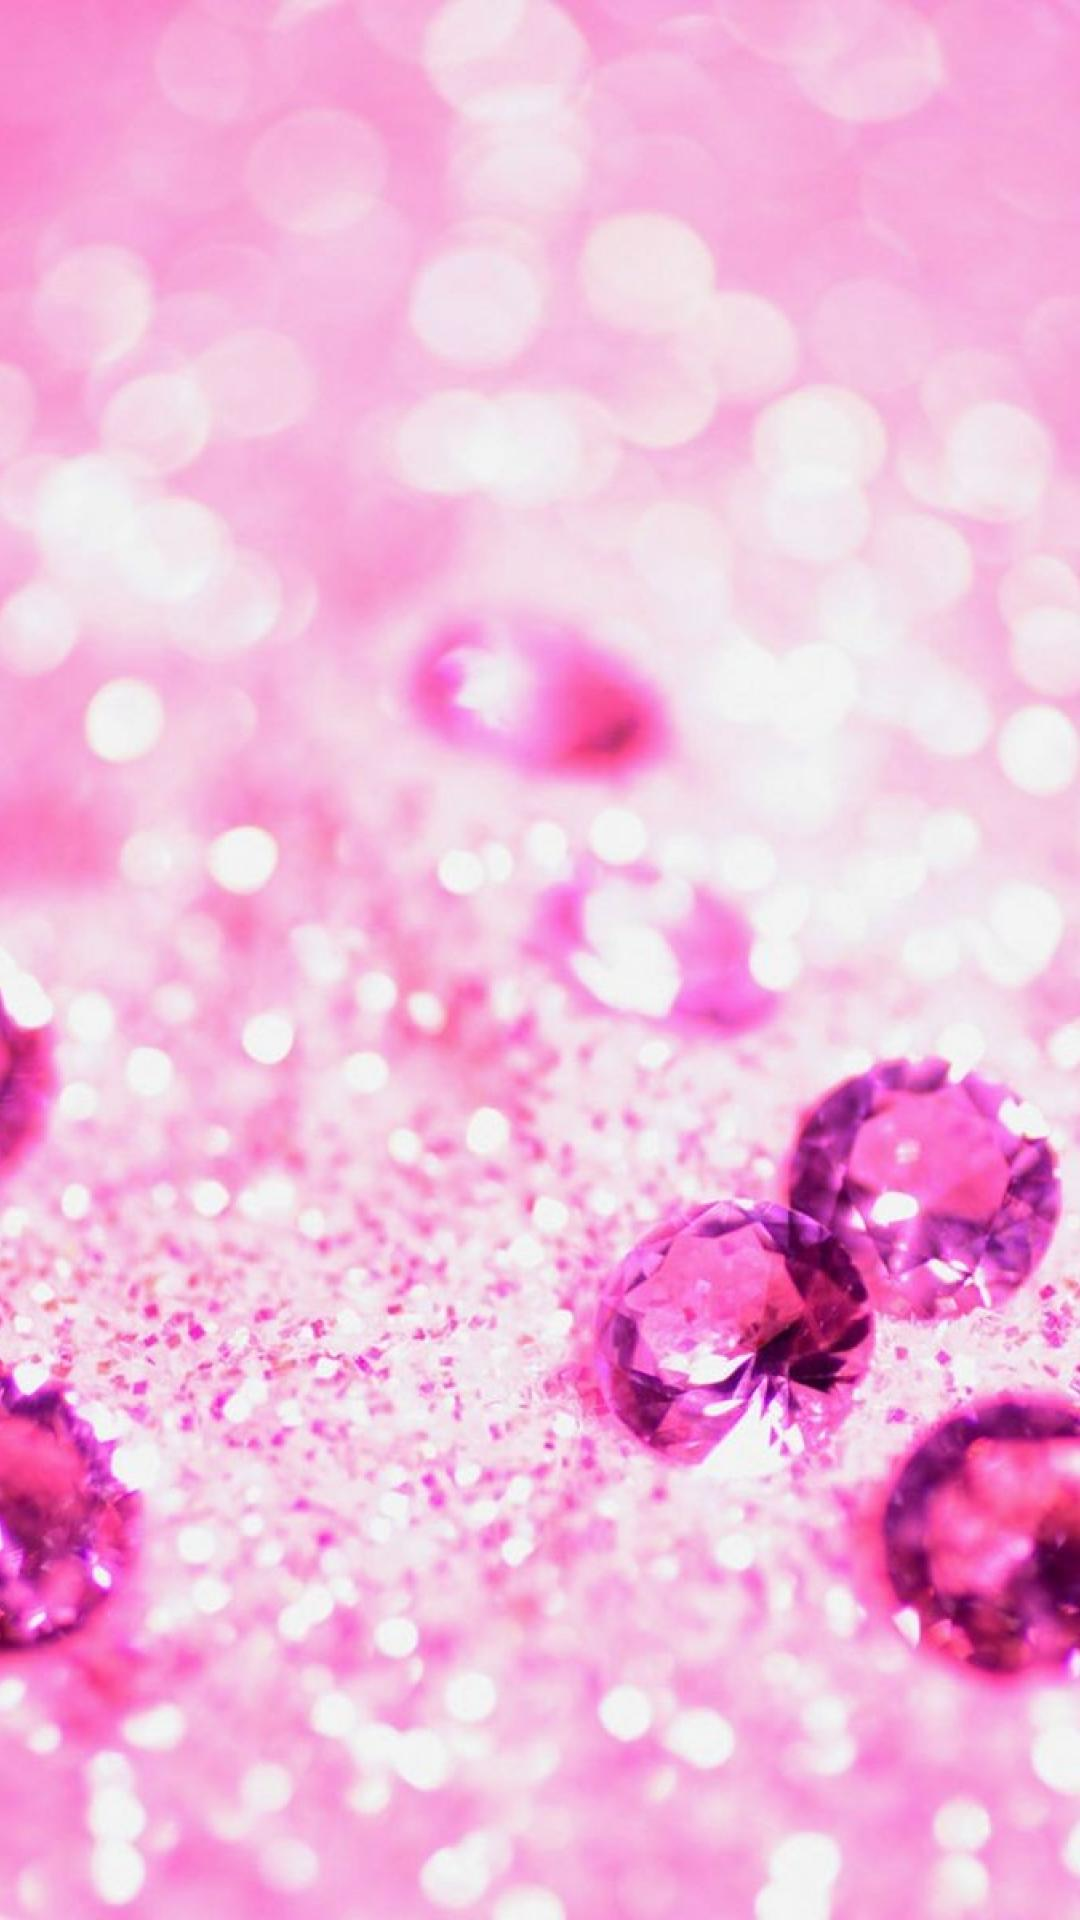 1080x1920 Lots of pink jewelry | Girly glitter iPhone wallpapers ...